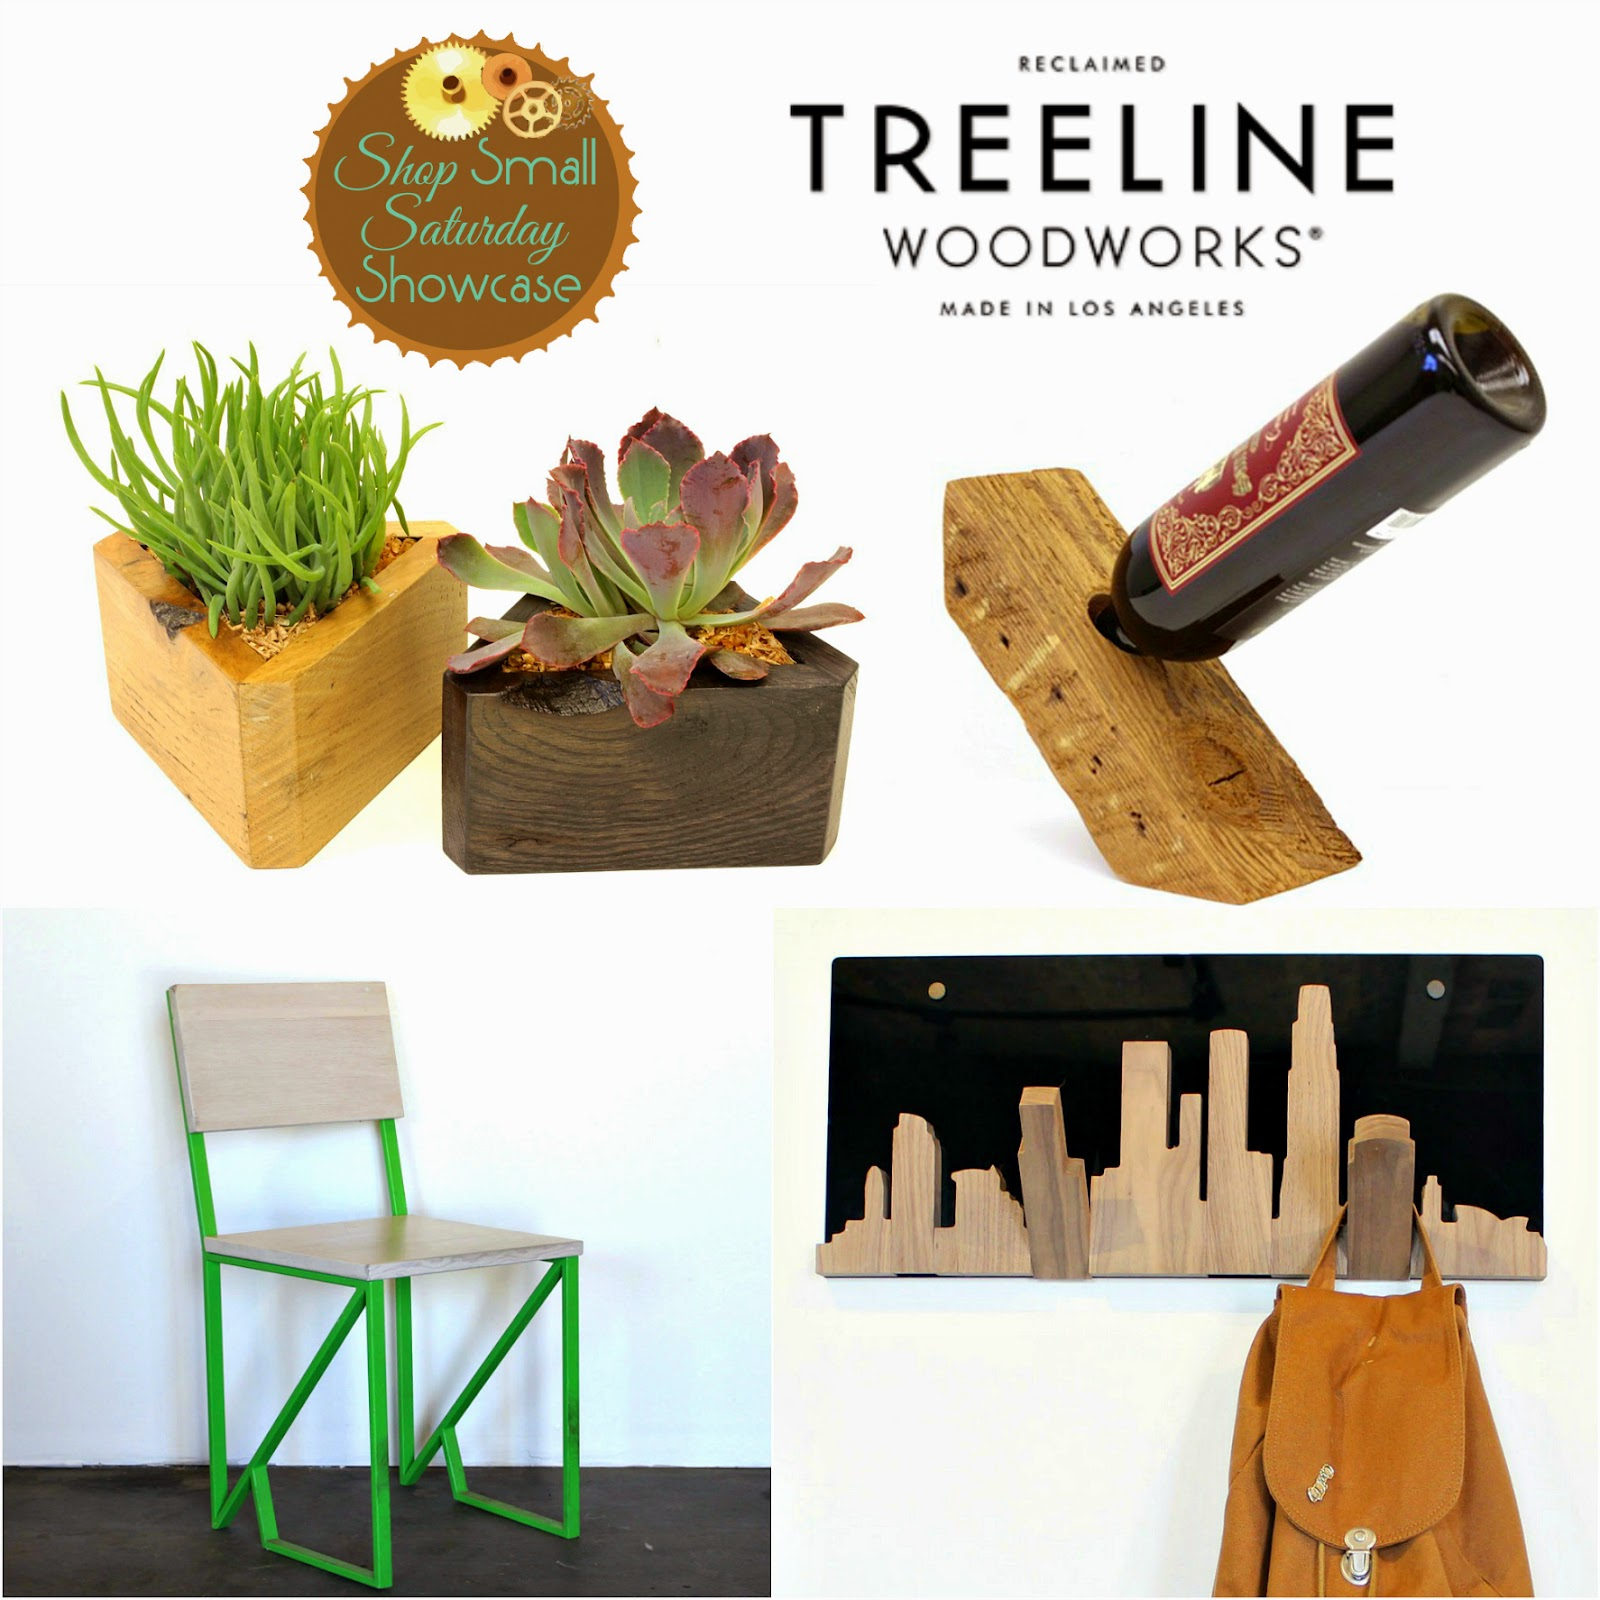 Treeline Woodworks feature & GIVEAWAY on Shop Small Saturday Showcase at Diane's Vintage Zest!